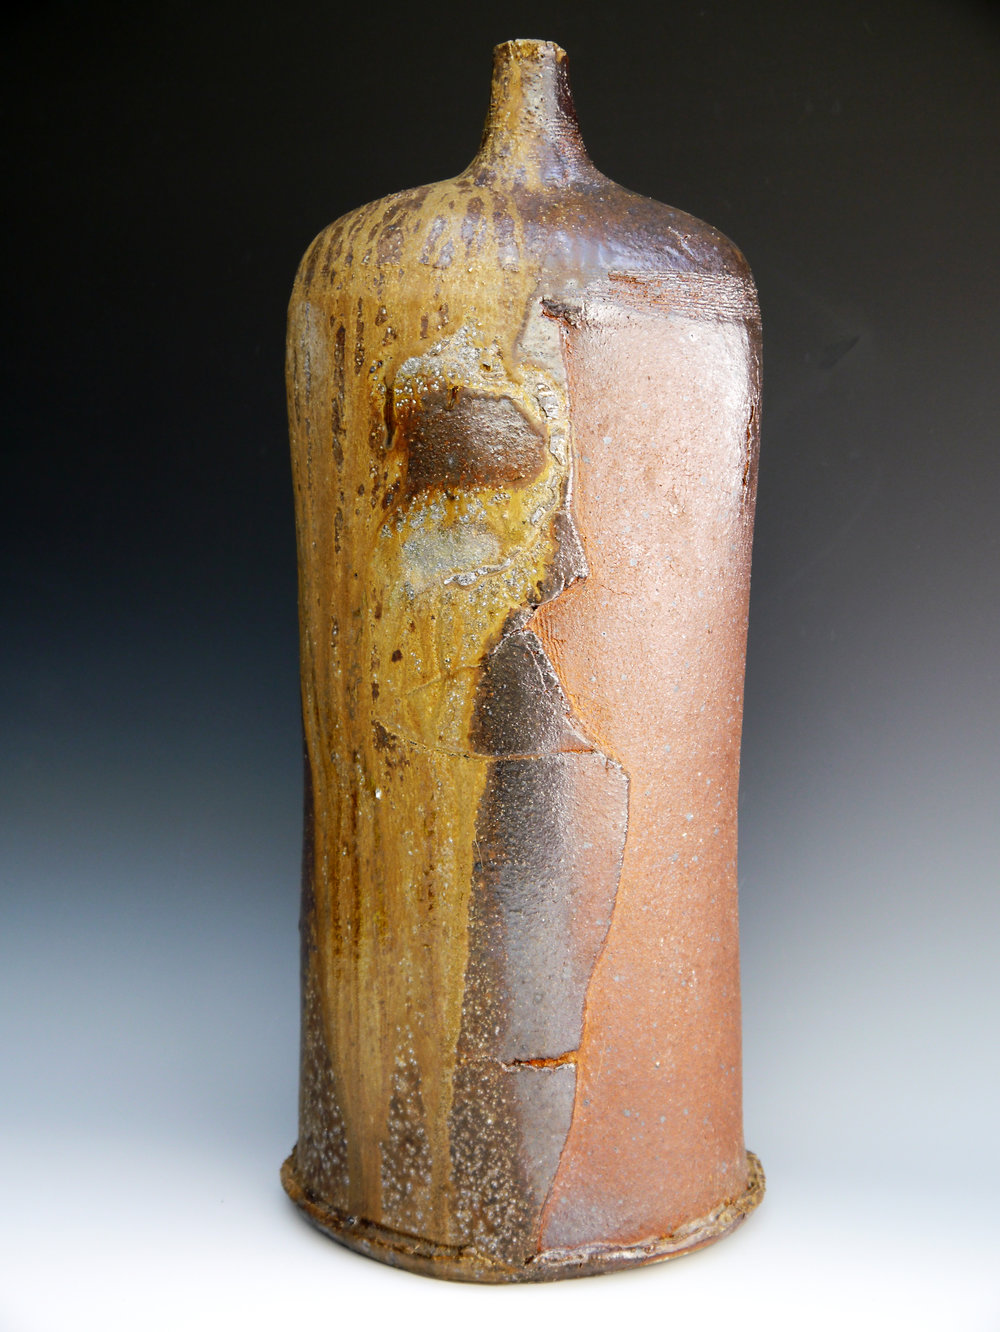 07 August 2014 4 day woodfired large bottle with shell marks 52 x 24.jpg